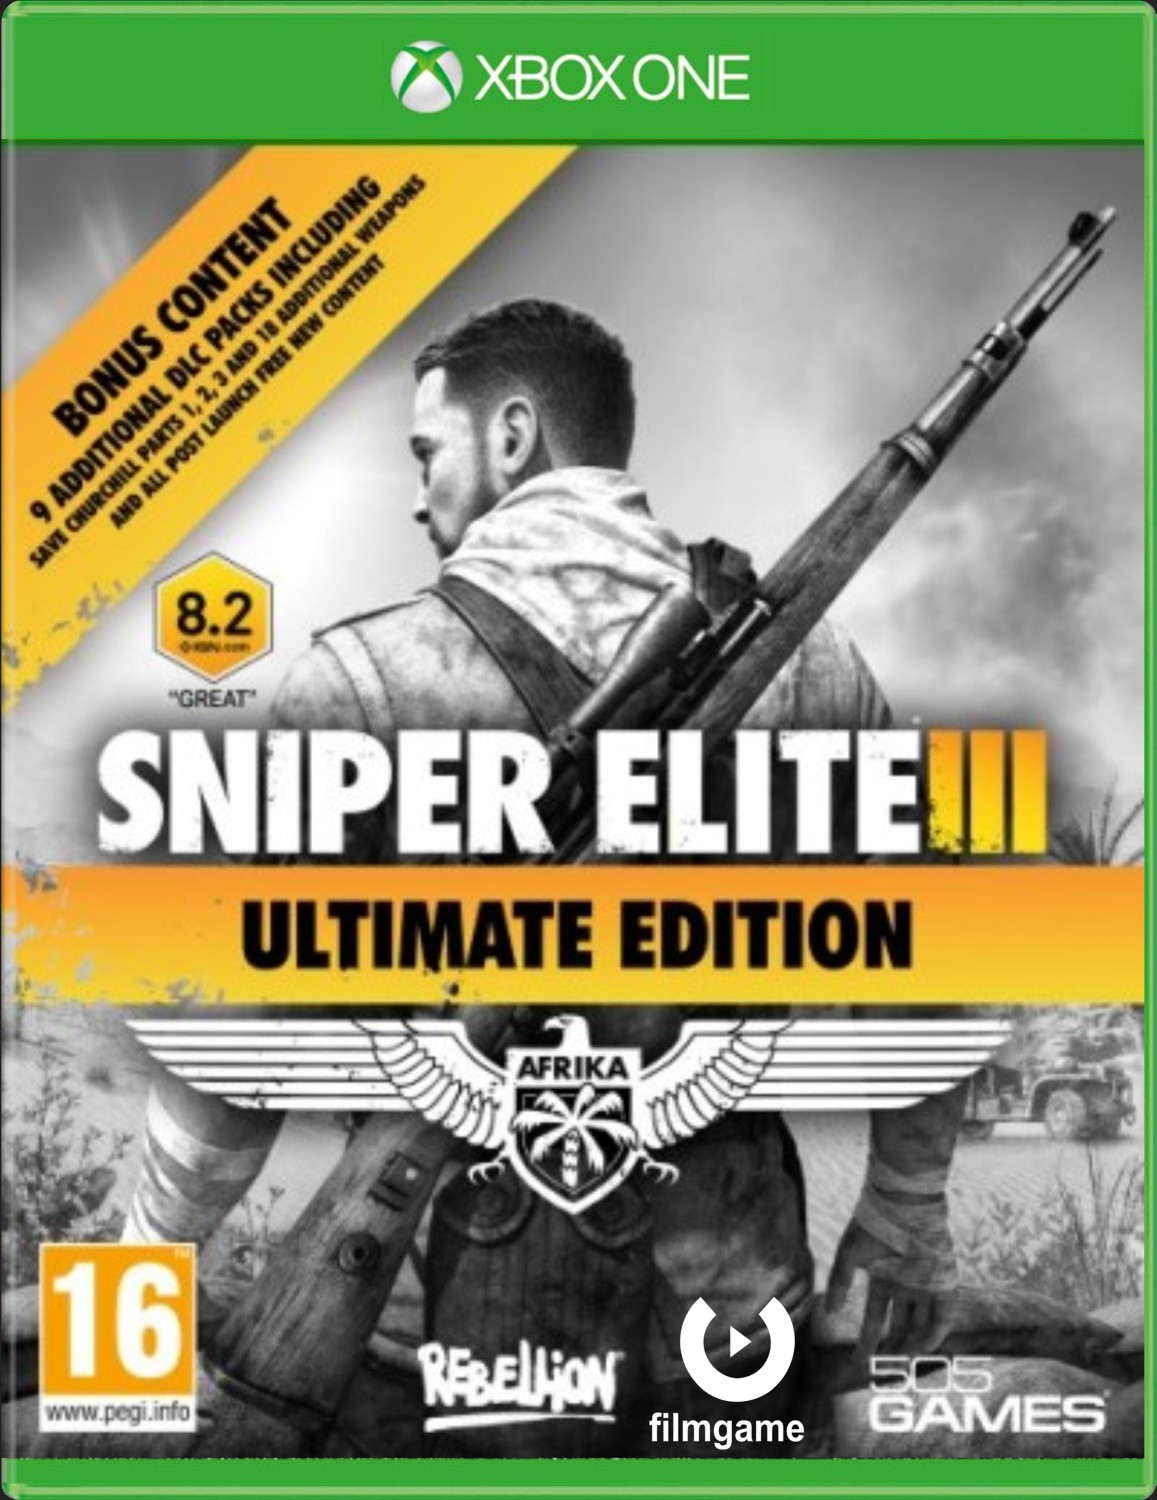 SNIPER ELITE 3 ULTIMATE EDITION - Xone